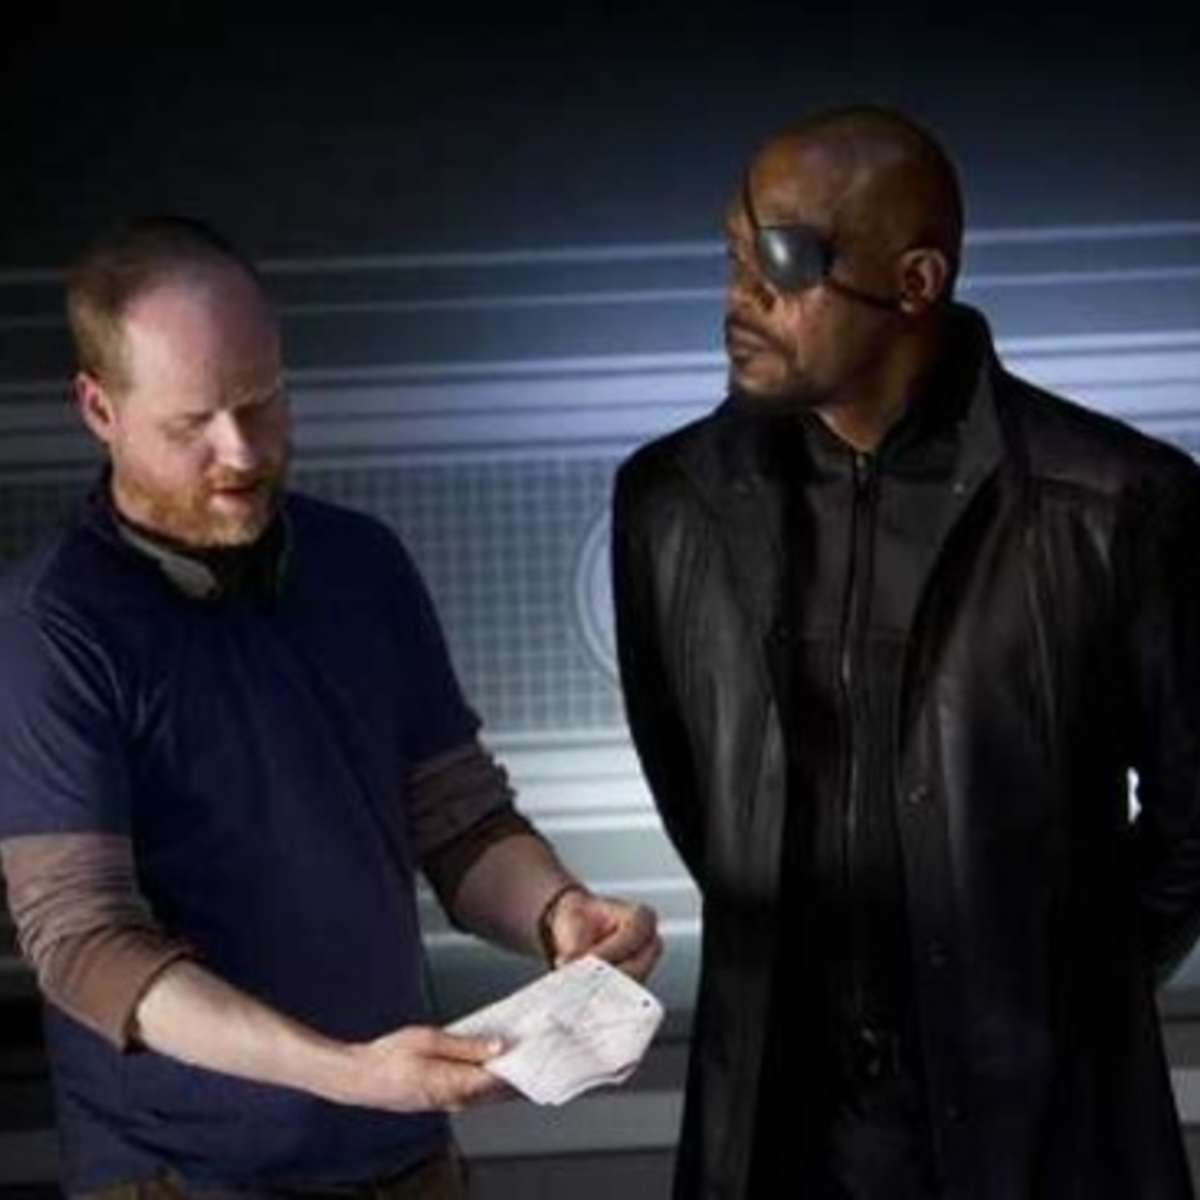 joss_whedon_jackson_shield.jpg